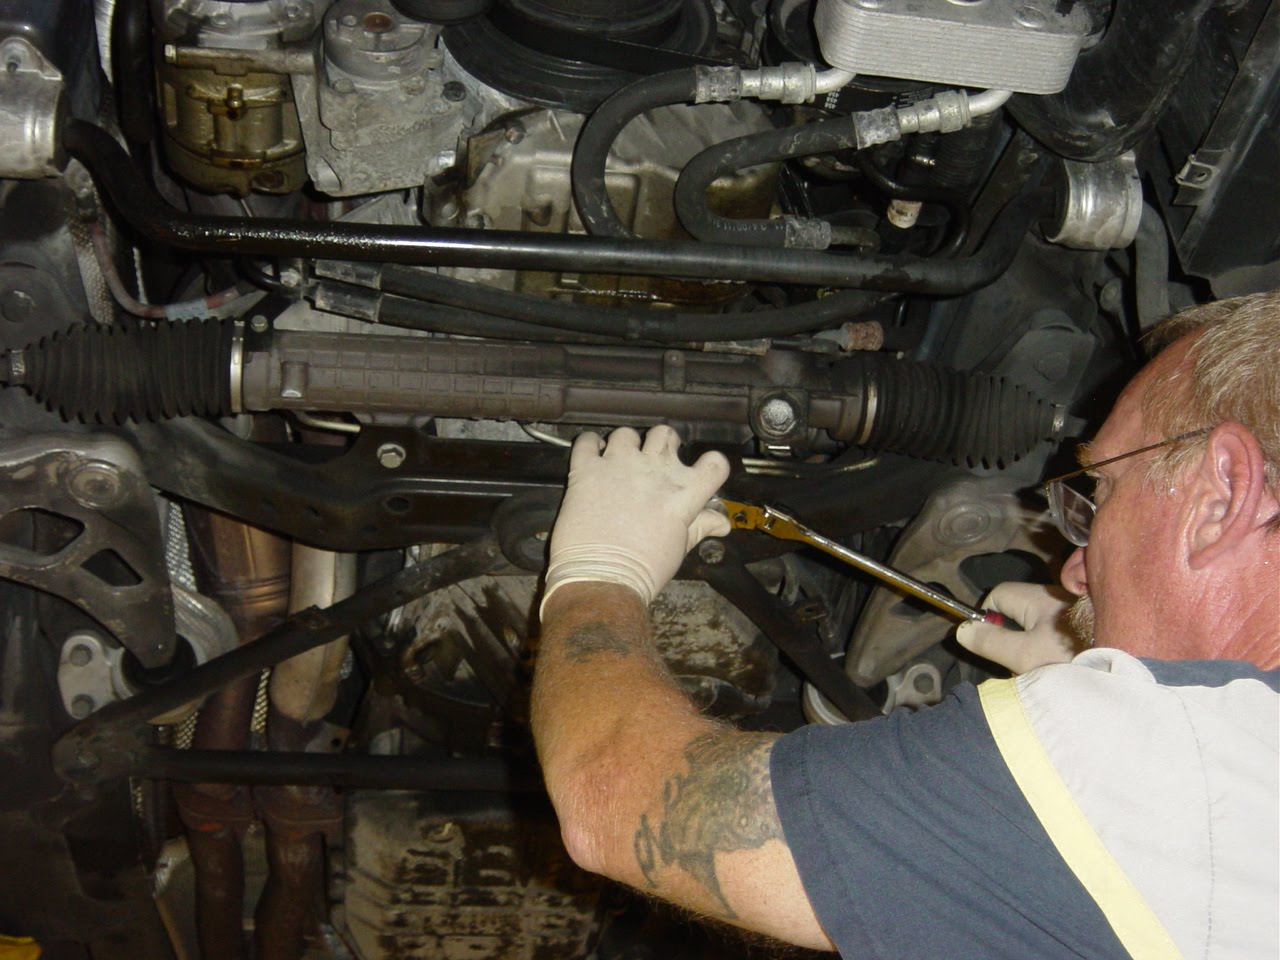 Keeping Those Wheels Planted! – Inspecting the Steering and Suspension Systems